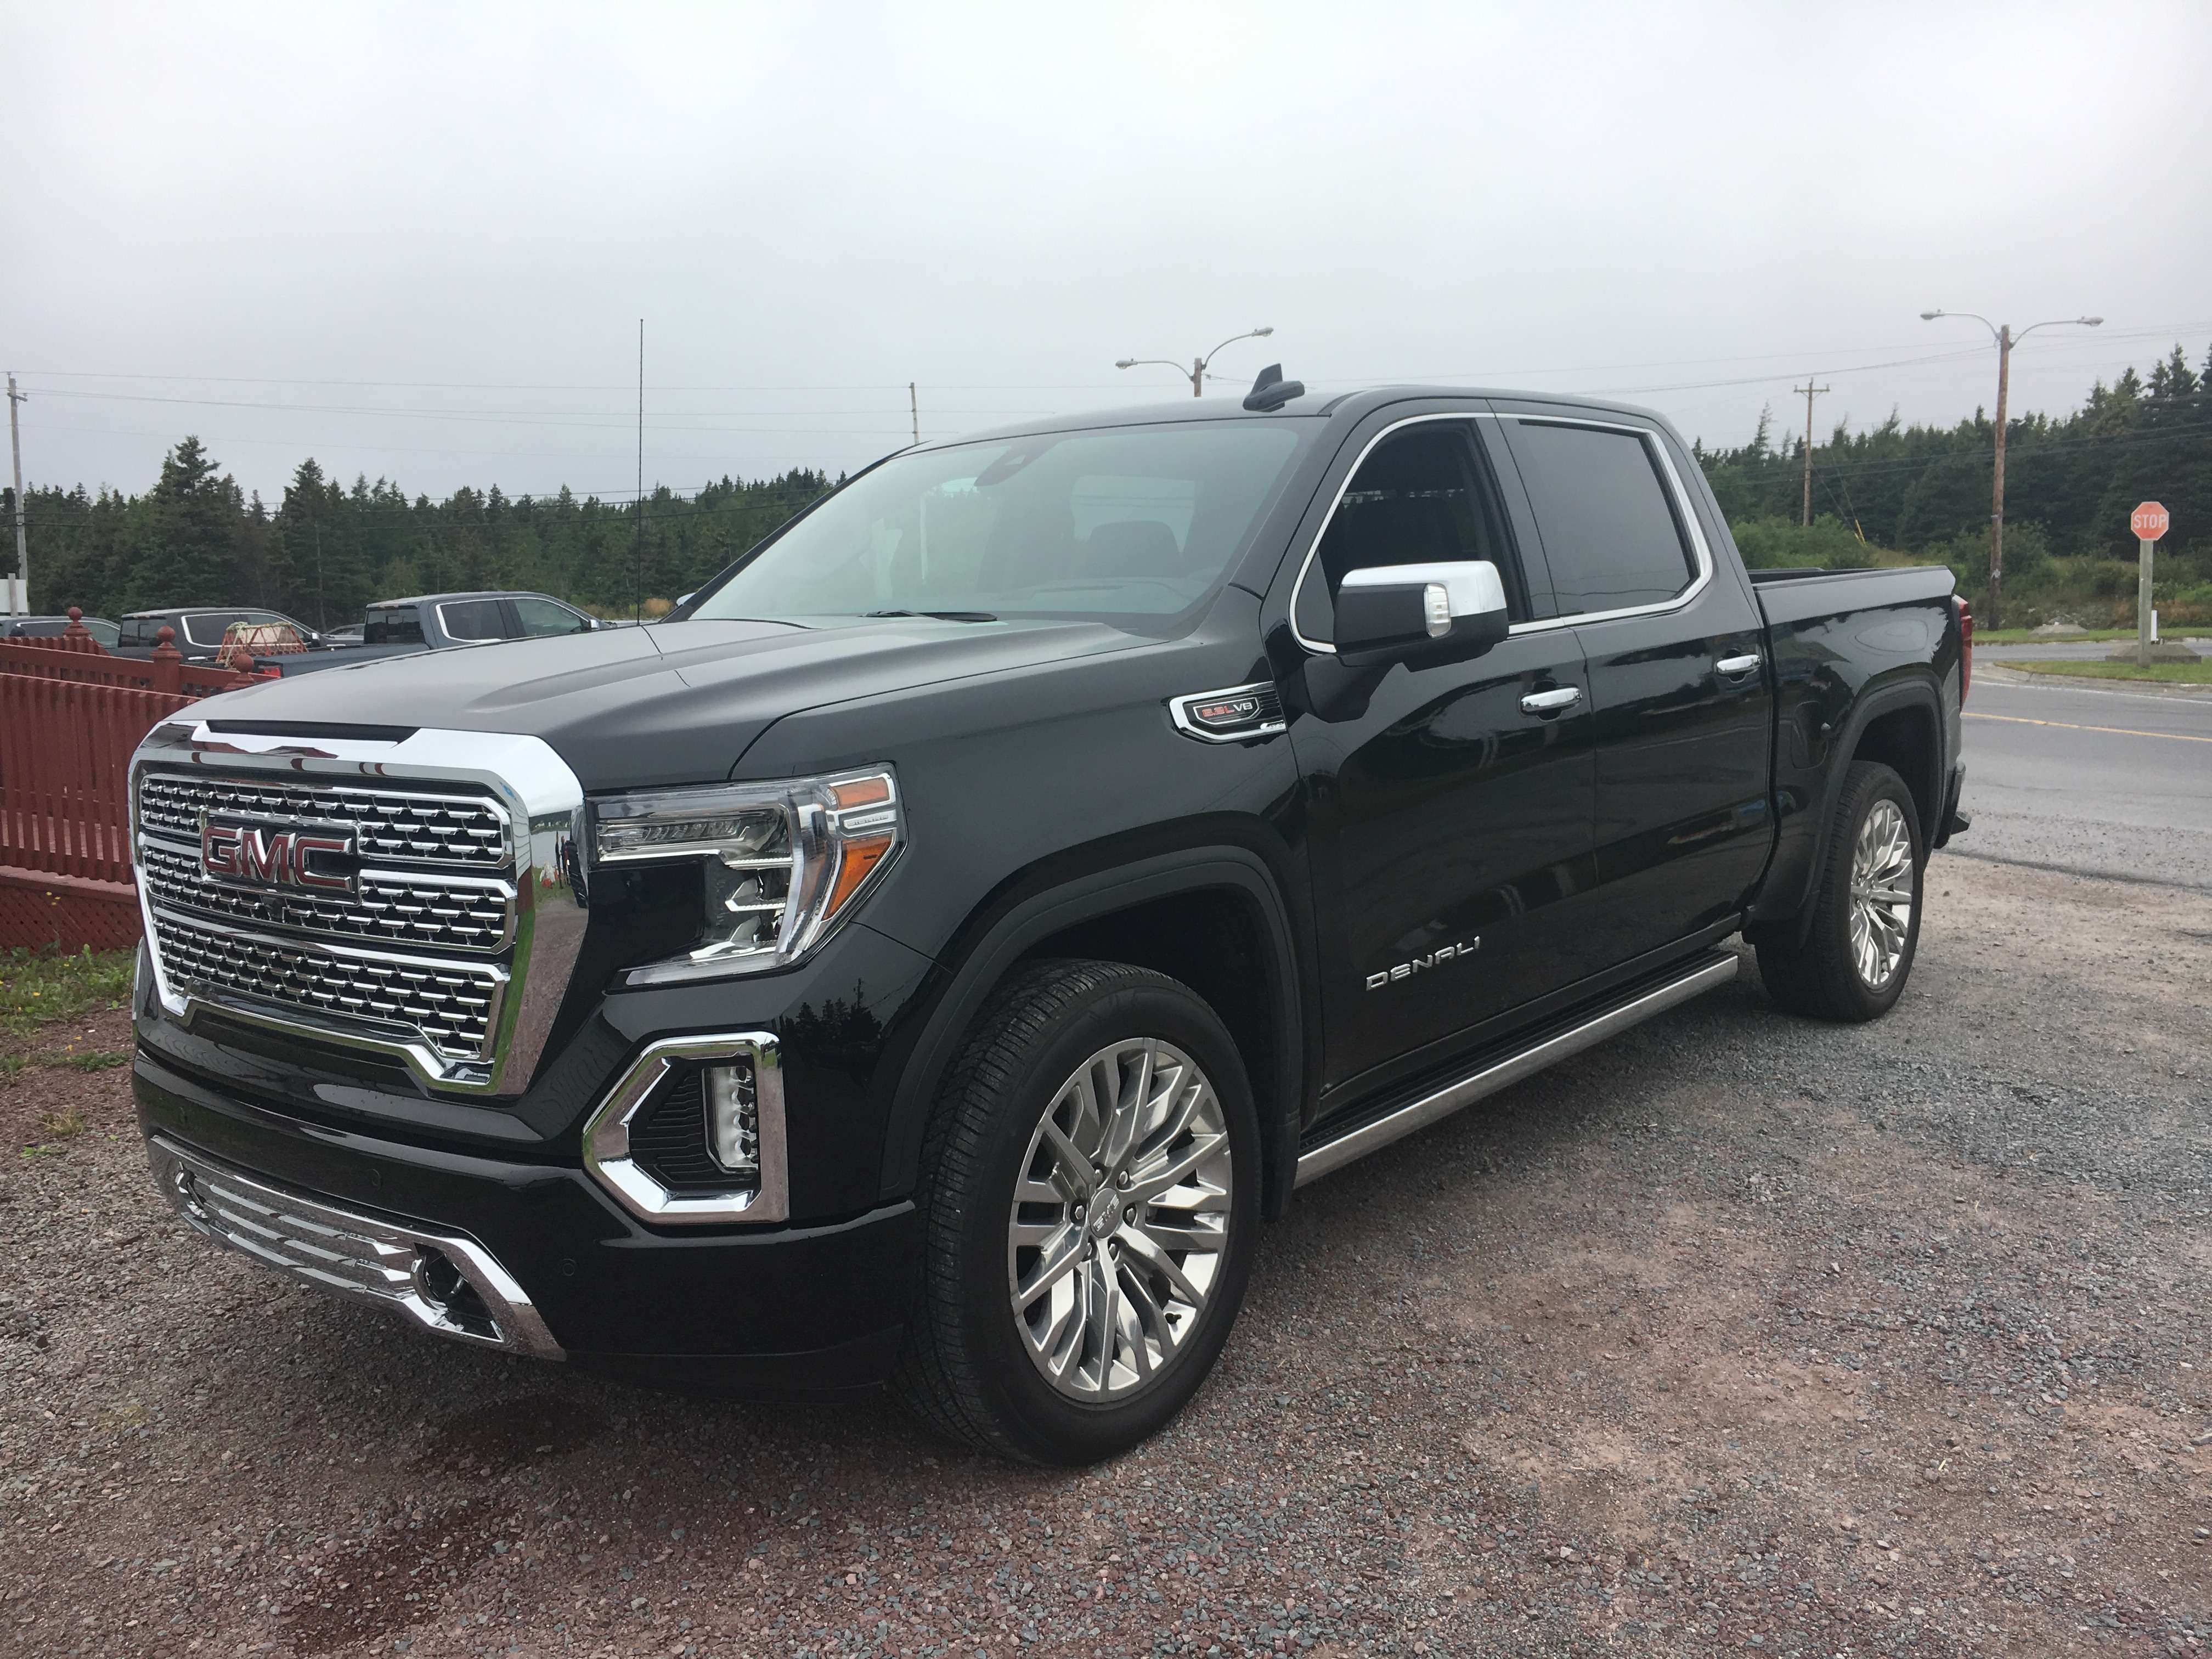 13 Concept of 2019 Gmc Engine Options Concept for 2019 Gmc Engine Options